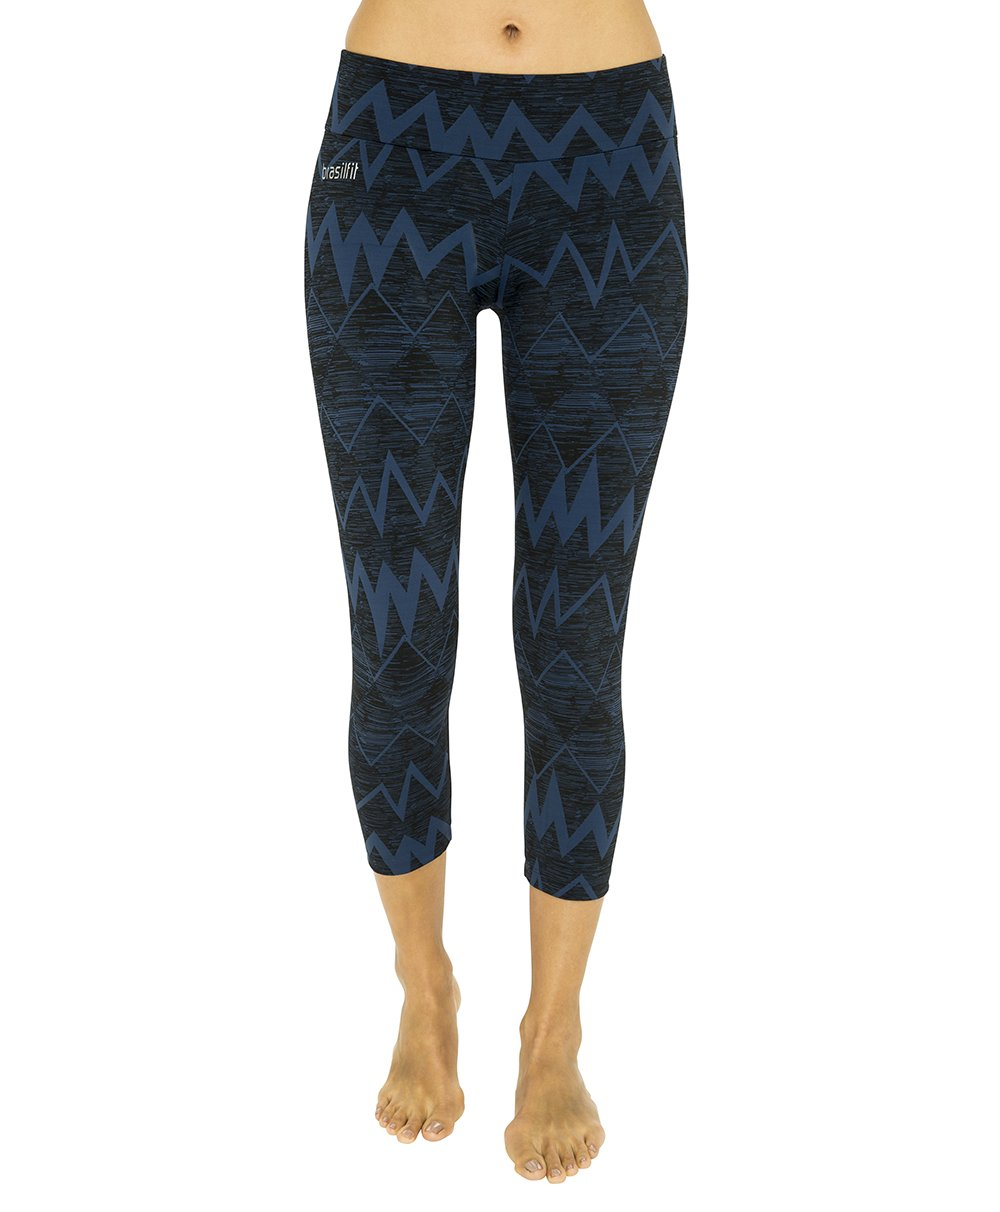 Side view product image for Brasilfit Jupiter Calf Length activewear leggings.  Jupiter leggings are part of our textured activewear legging collection that is focused on performance, high compression activewear.